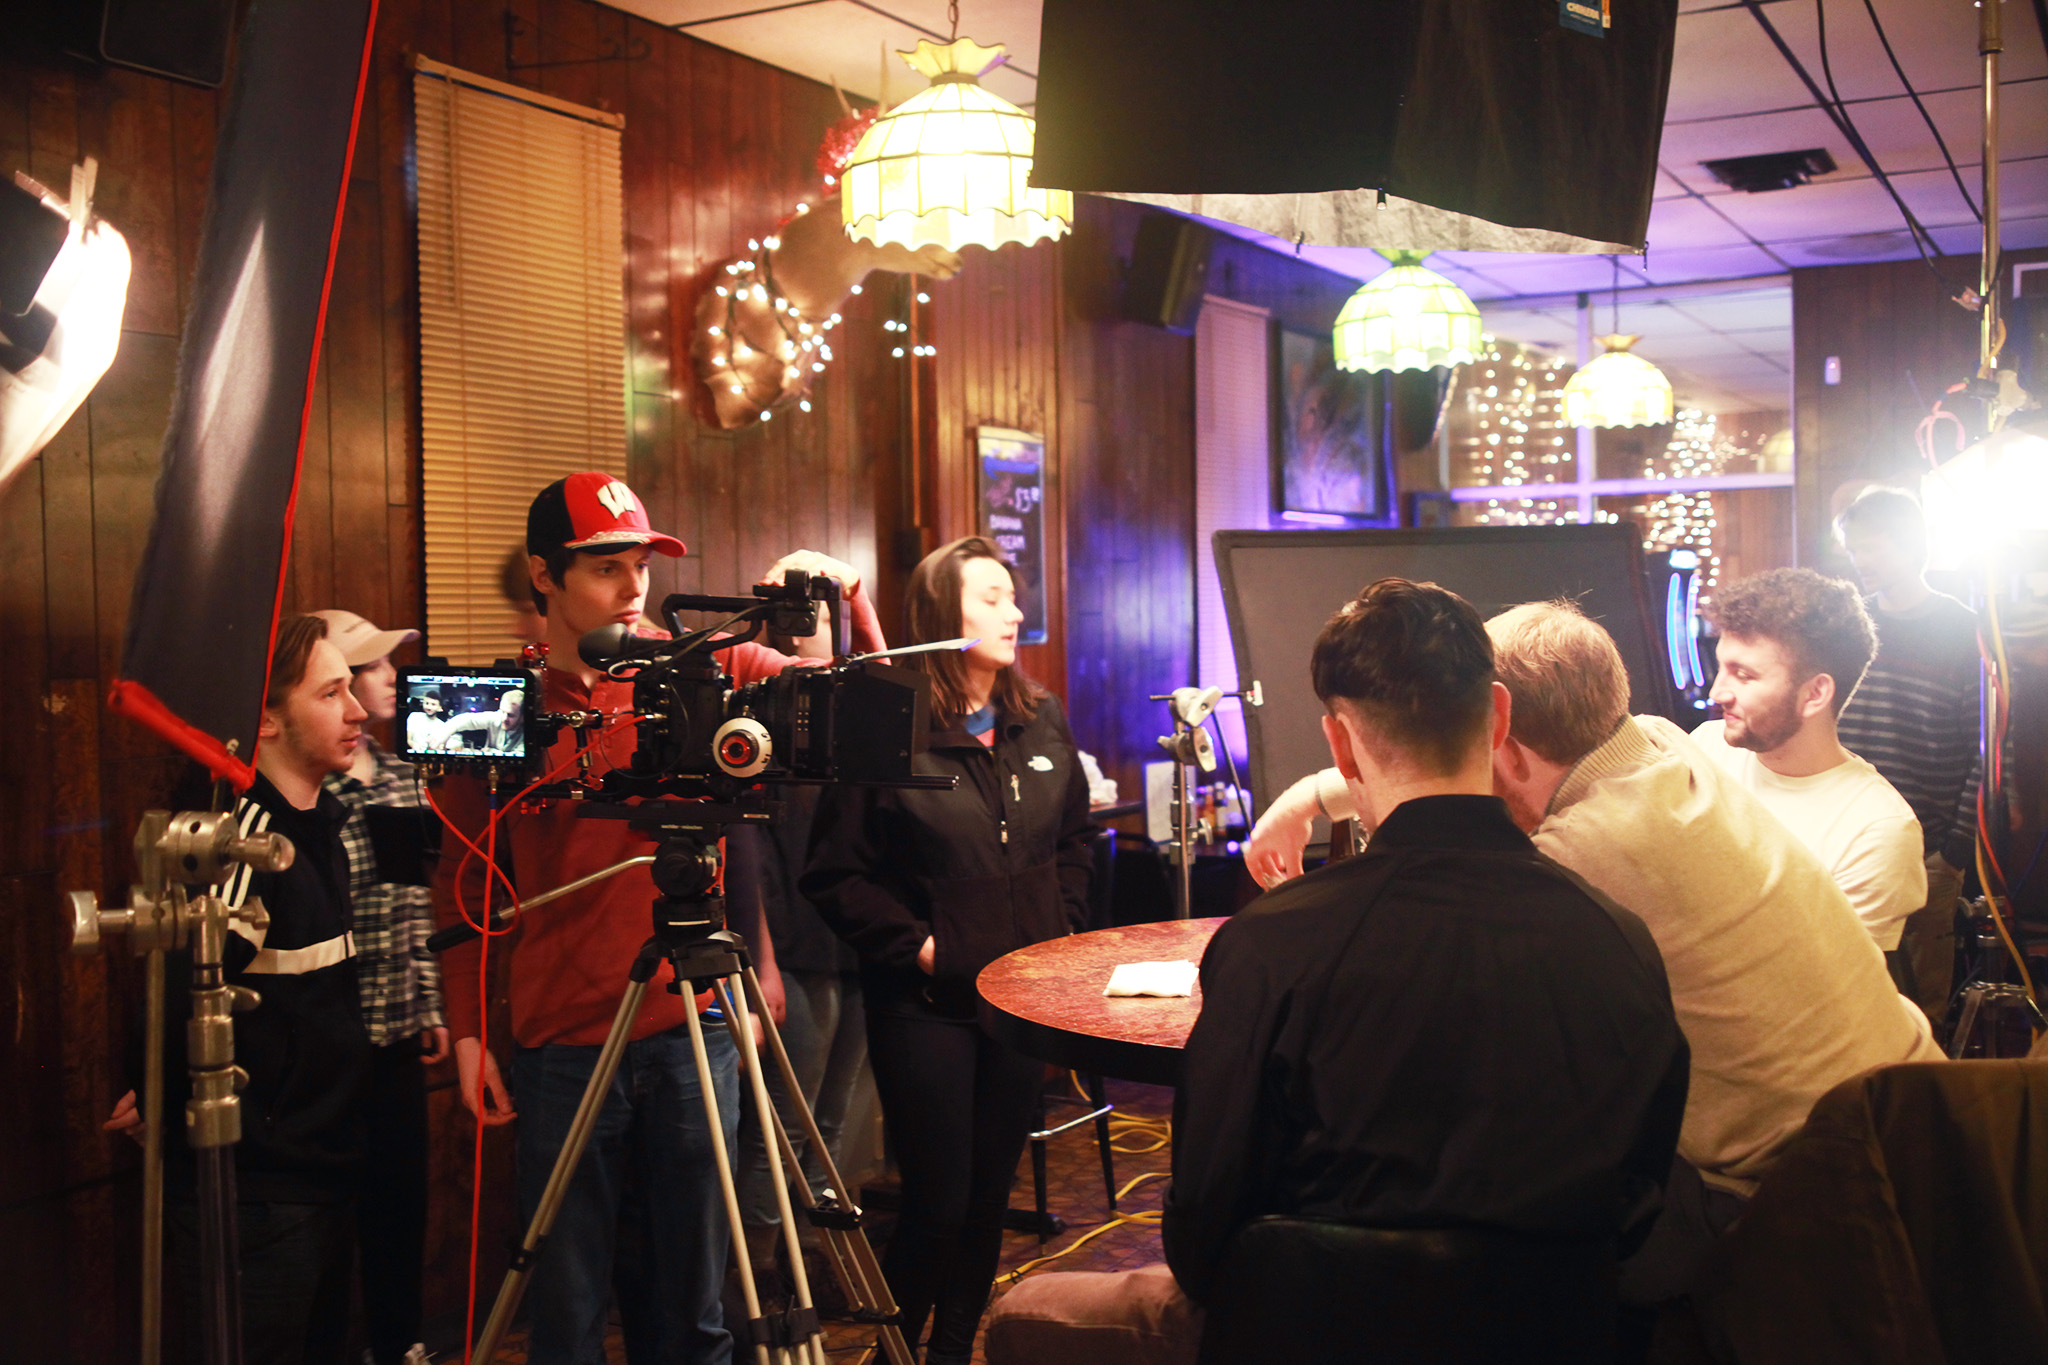 Comm Arts media production students film on location in a bar.